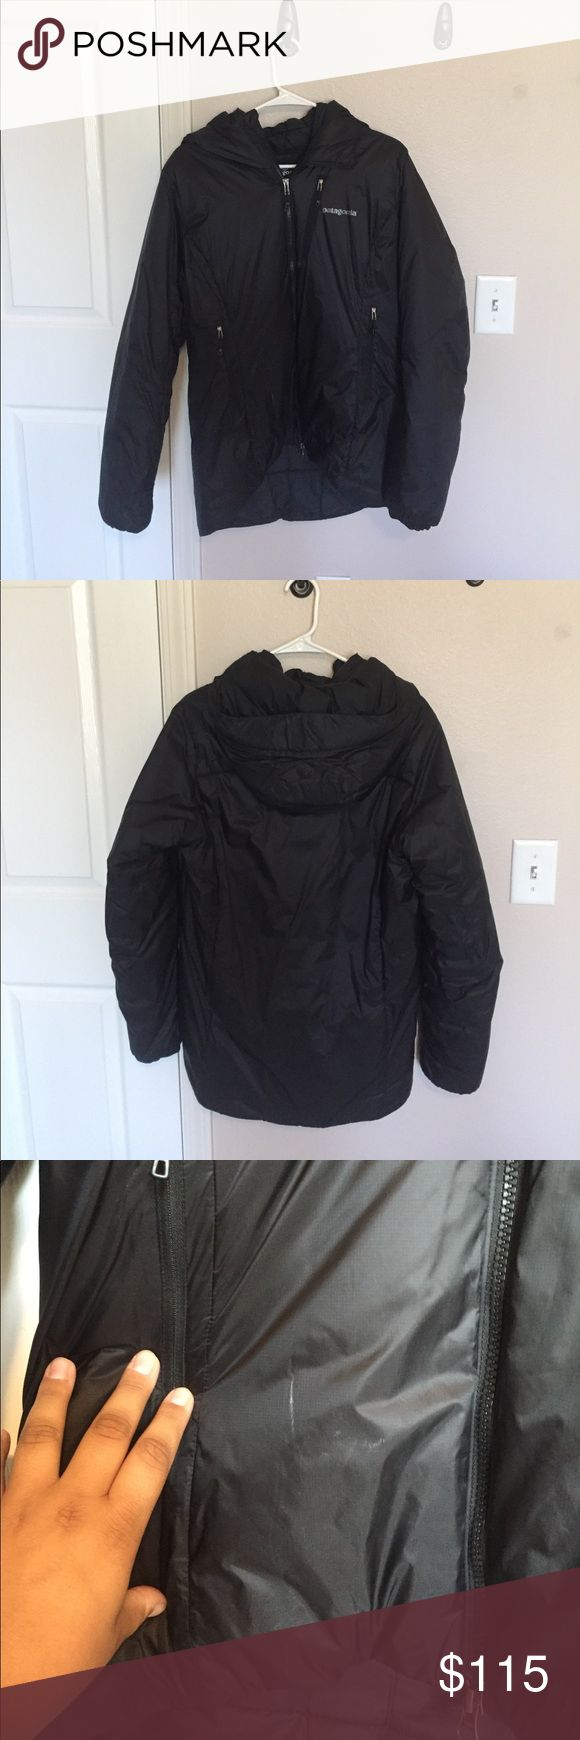 Patagonia Women's DAS Parka Gently used women's Patagonia DAS Parka. In very good condition besides a small white mark on the lower right hand side of the jacket. Great product - keeps you warm during the cold winter months! Patagonia Jackets & Coats Puffers